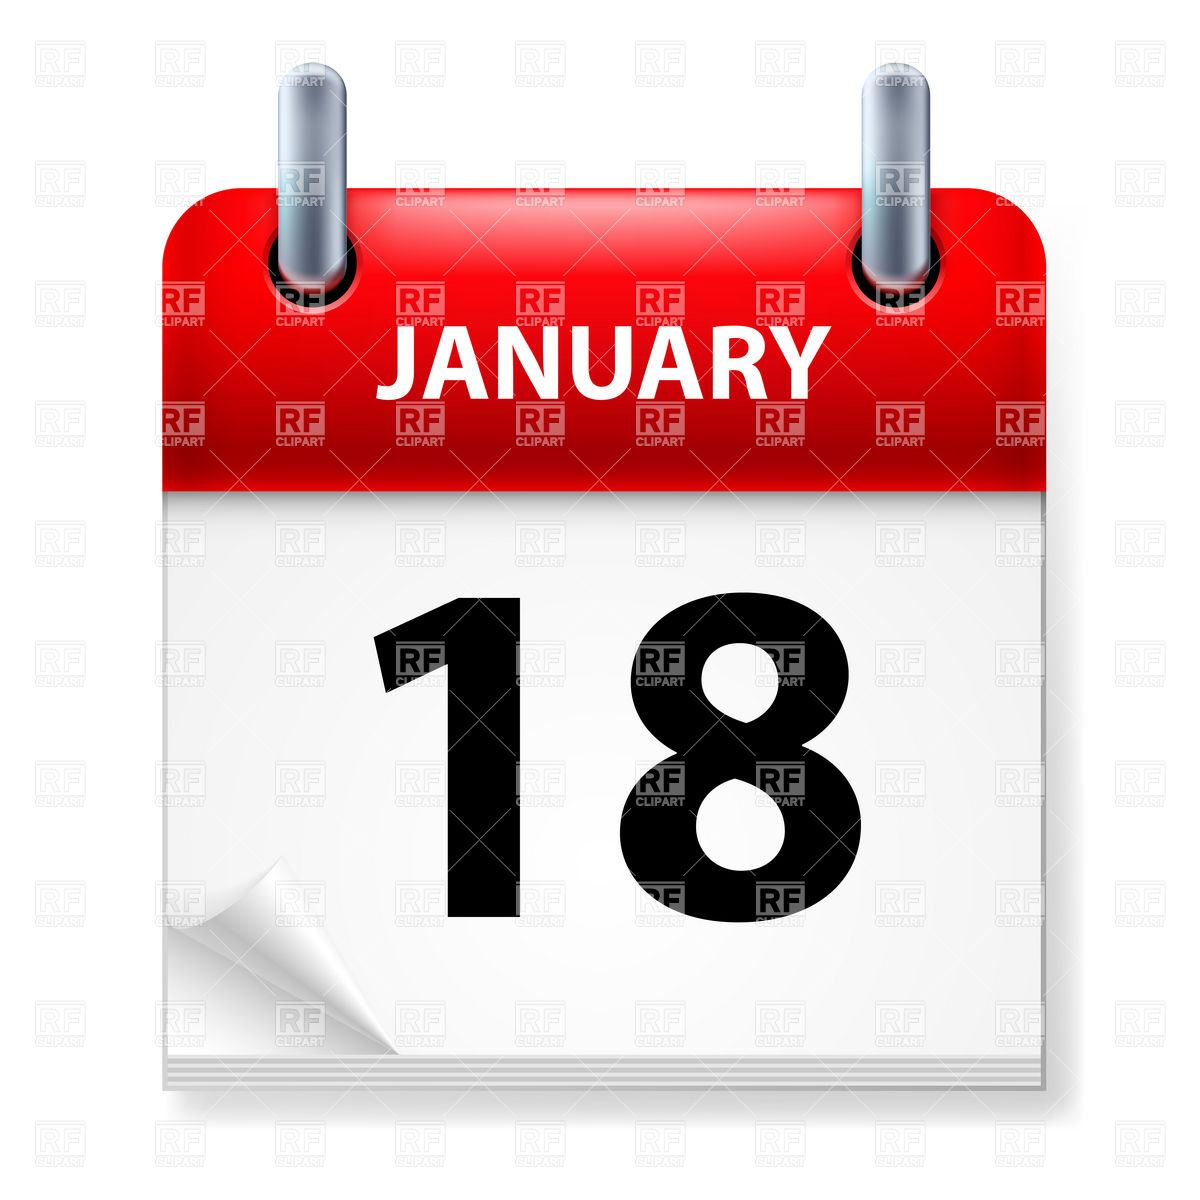 January 18th calendar clipart clipart library library January 18th calendar clipart - ClipartFest clipart library library